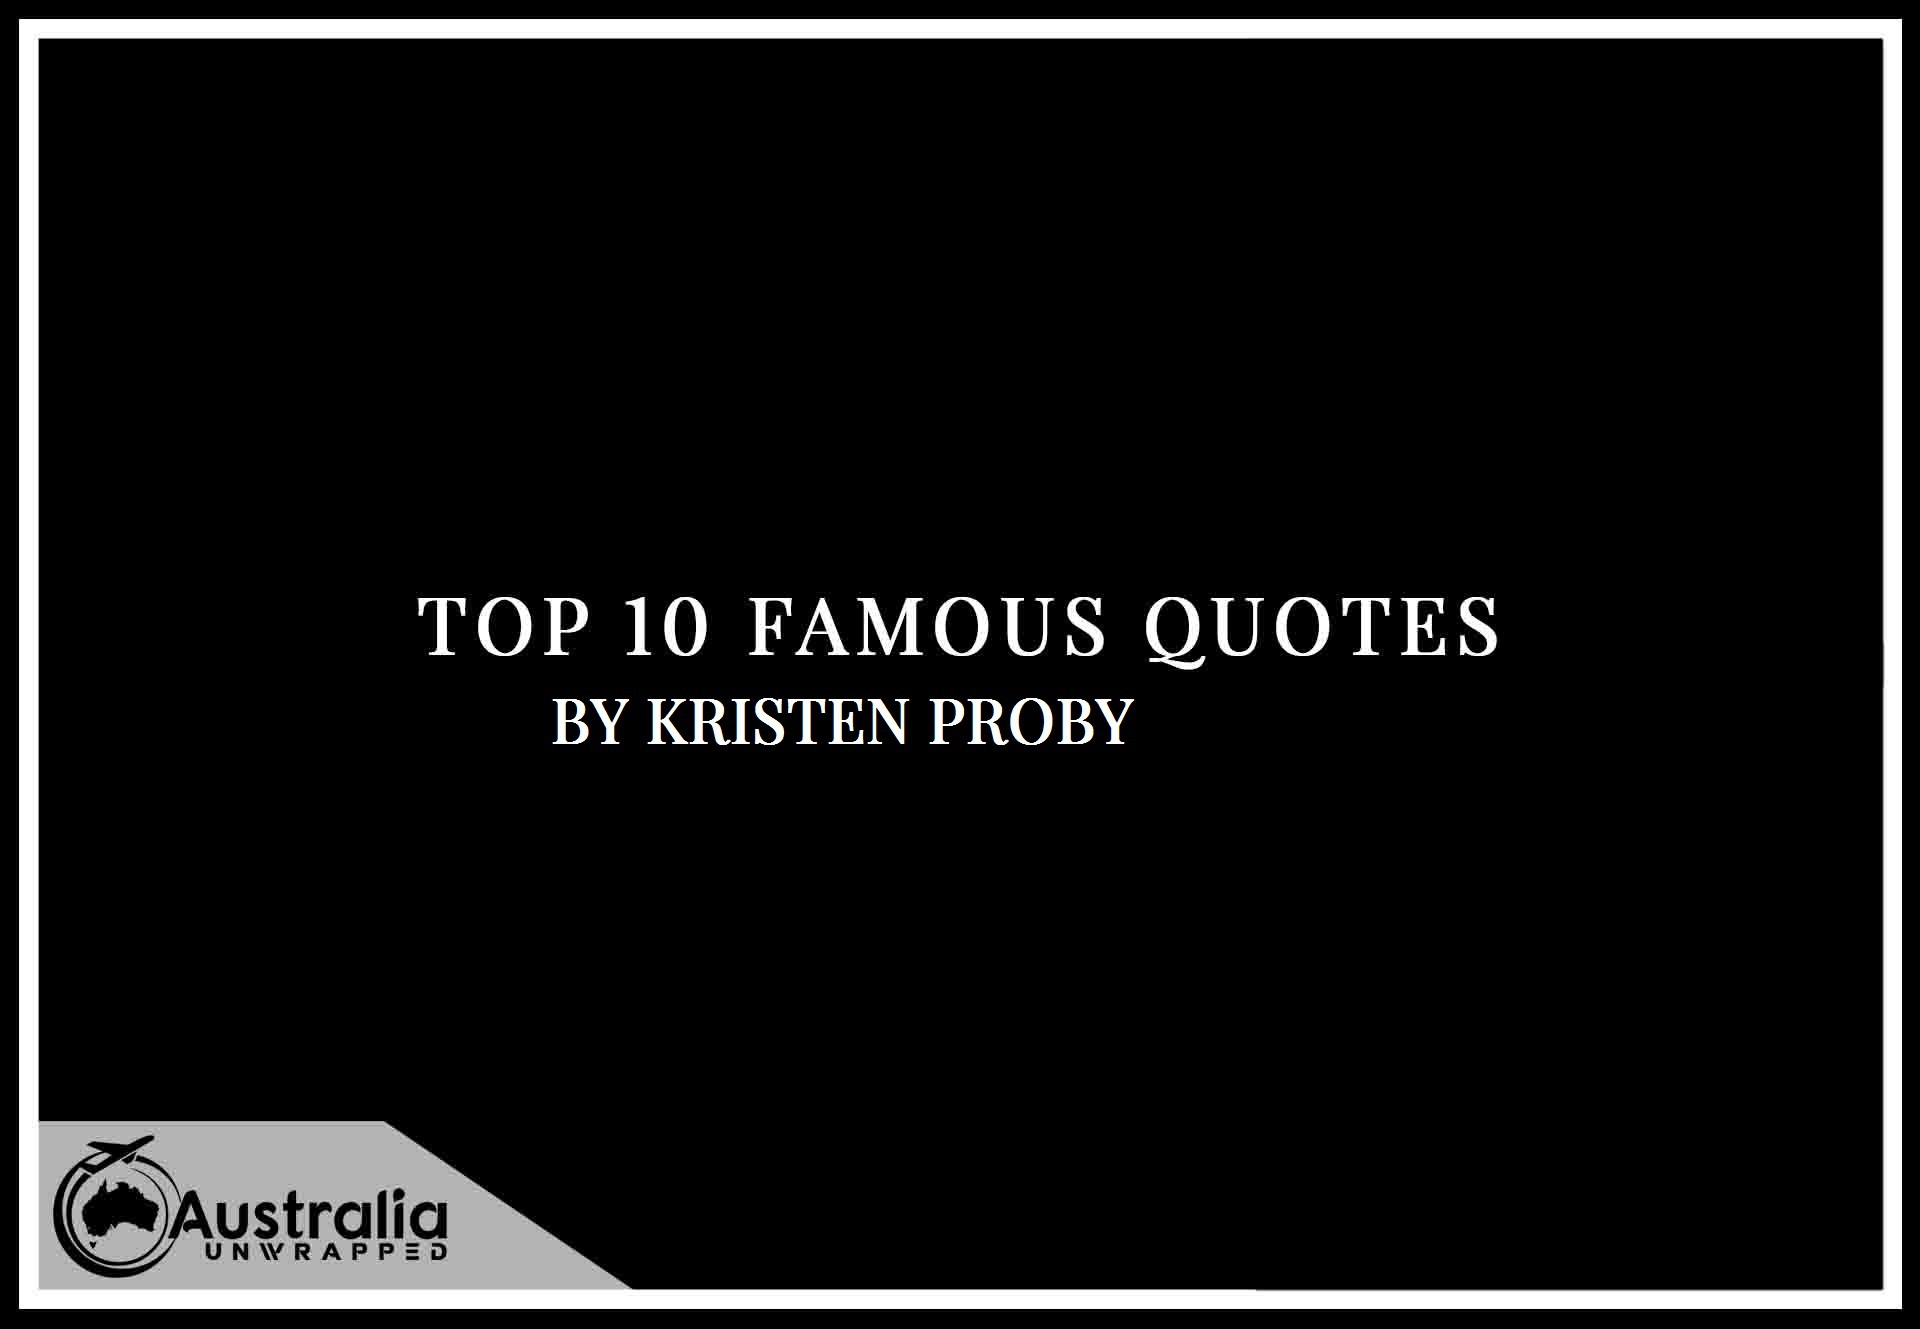 Kristen Proby's Top 10 Popular and Famous Quotes